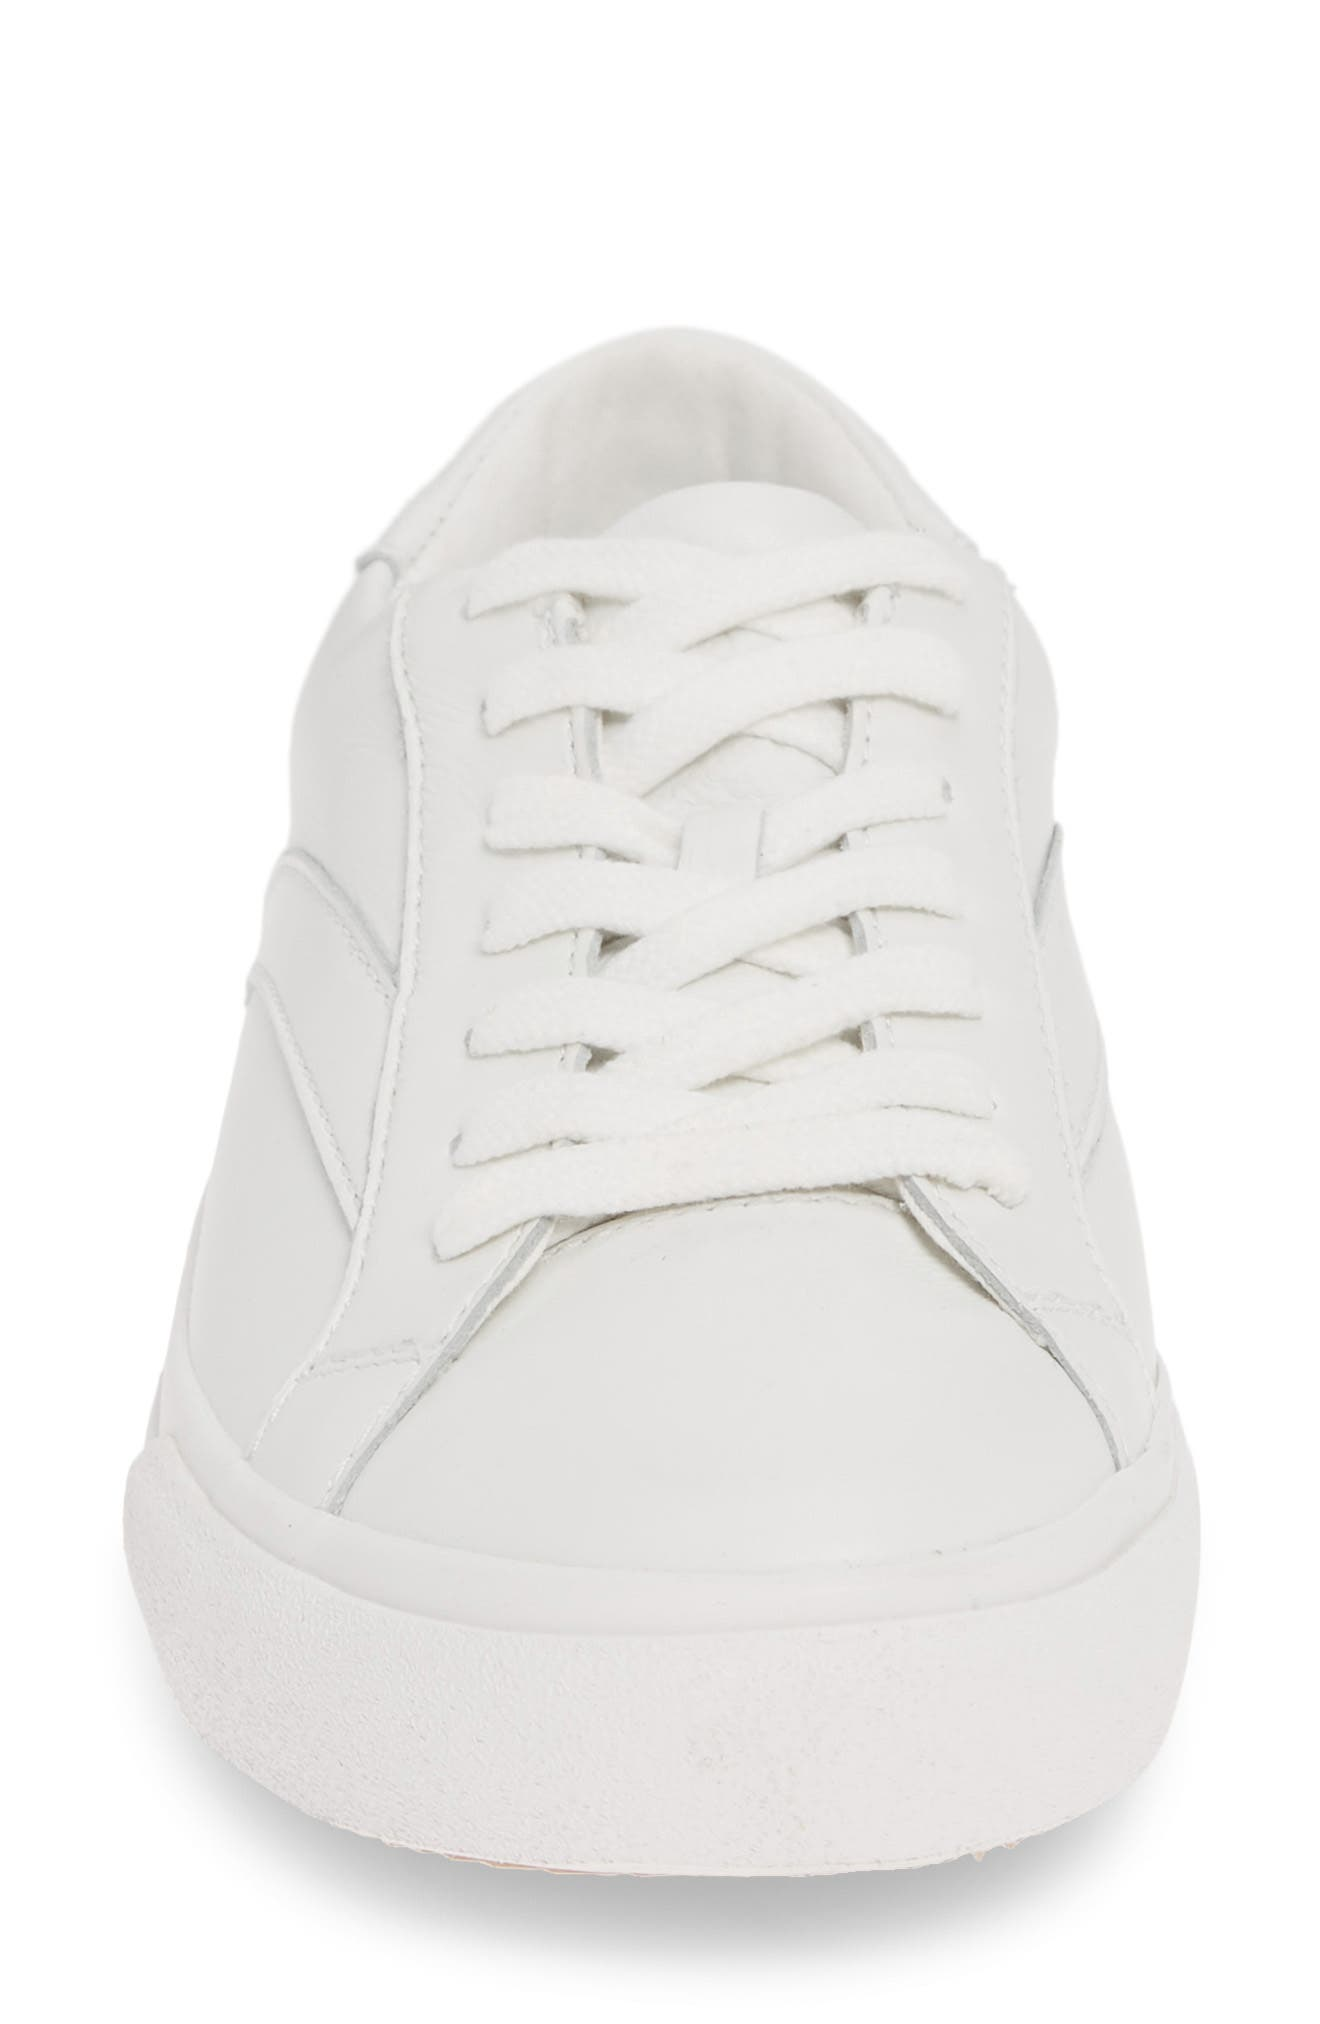 MADEWELL, Sidewalk Low Top Sneaker, Alternate thumbnail 5, color, PALE PARCHMENT LEATHER